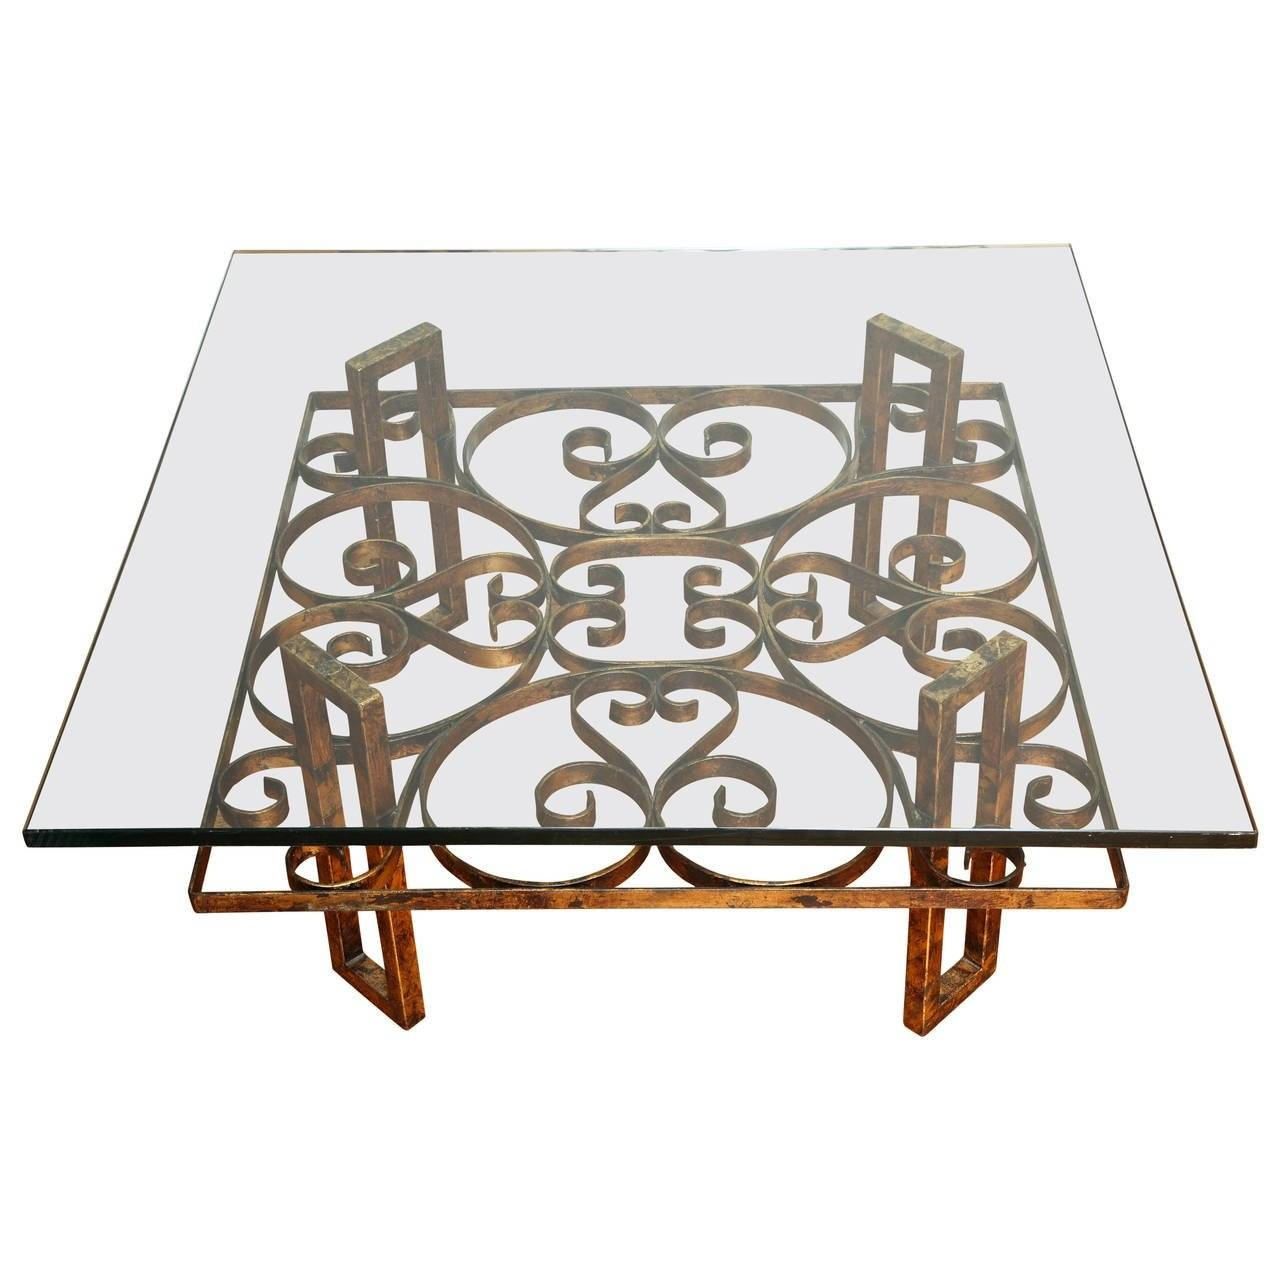 Gilded Wrought Iron Square Coffee Table With Scroll Motif Glass regarding Wrought Iron Coffee Tables (Image 5 of 30)